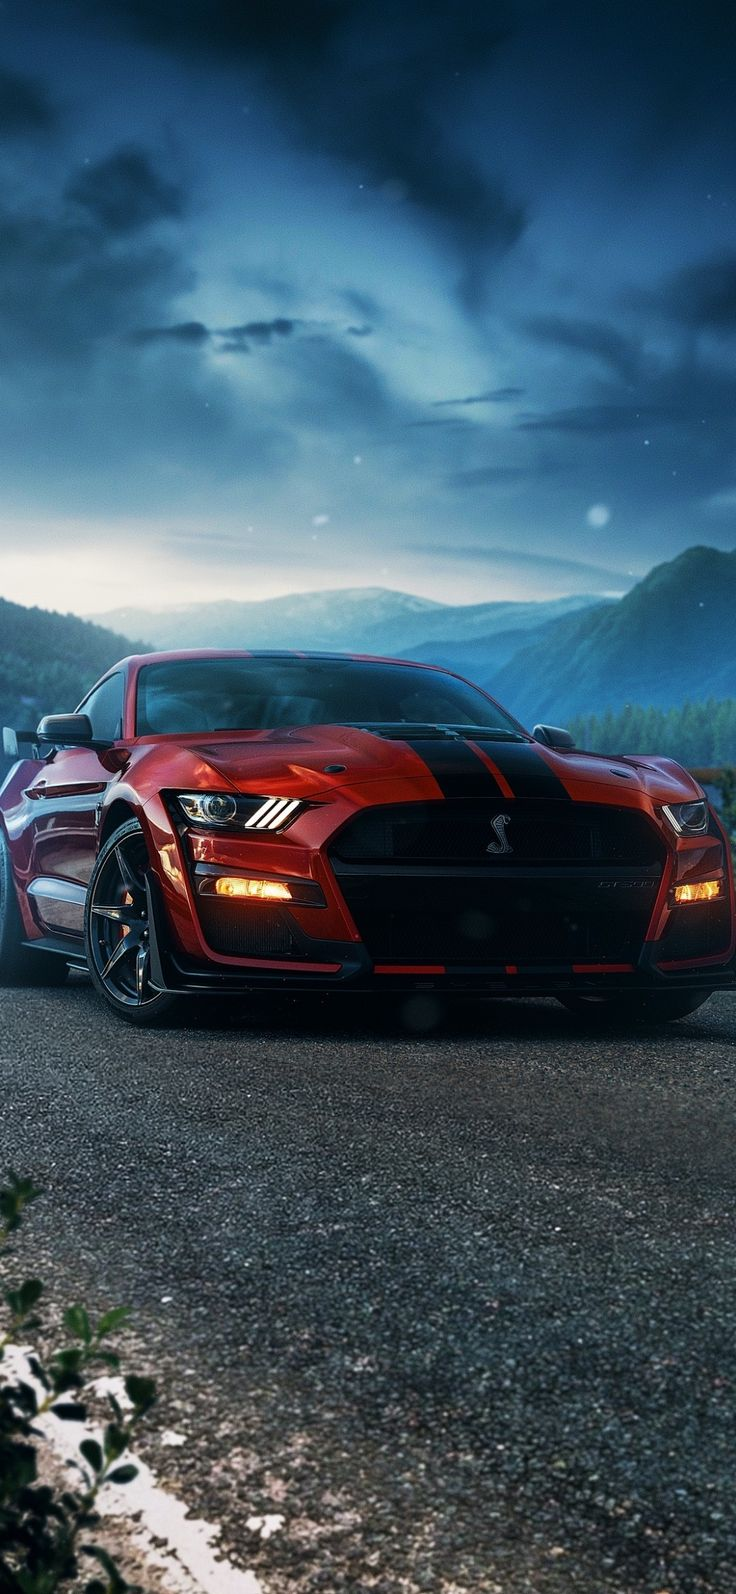 Follow me please in 2020 Mustang wallpaper, Ford mustang